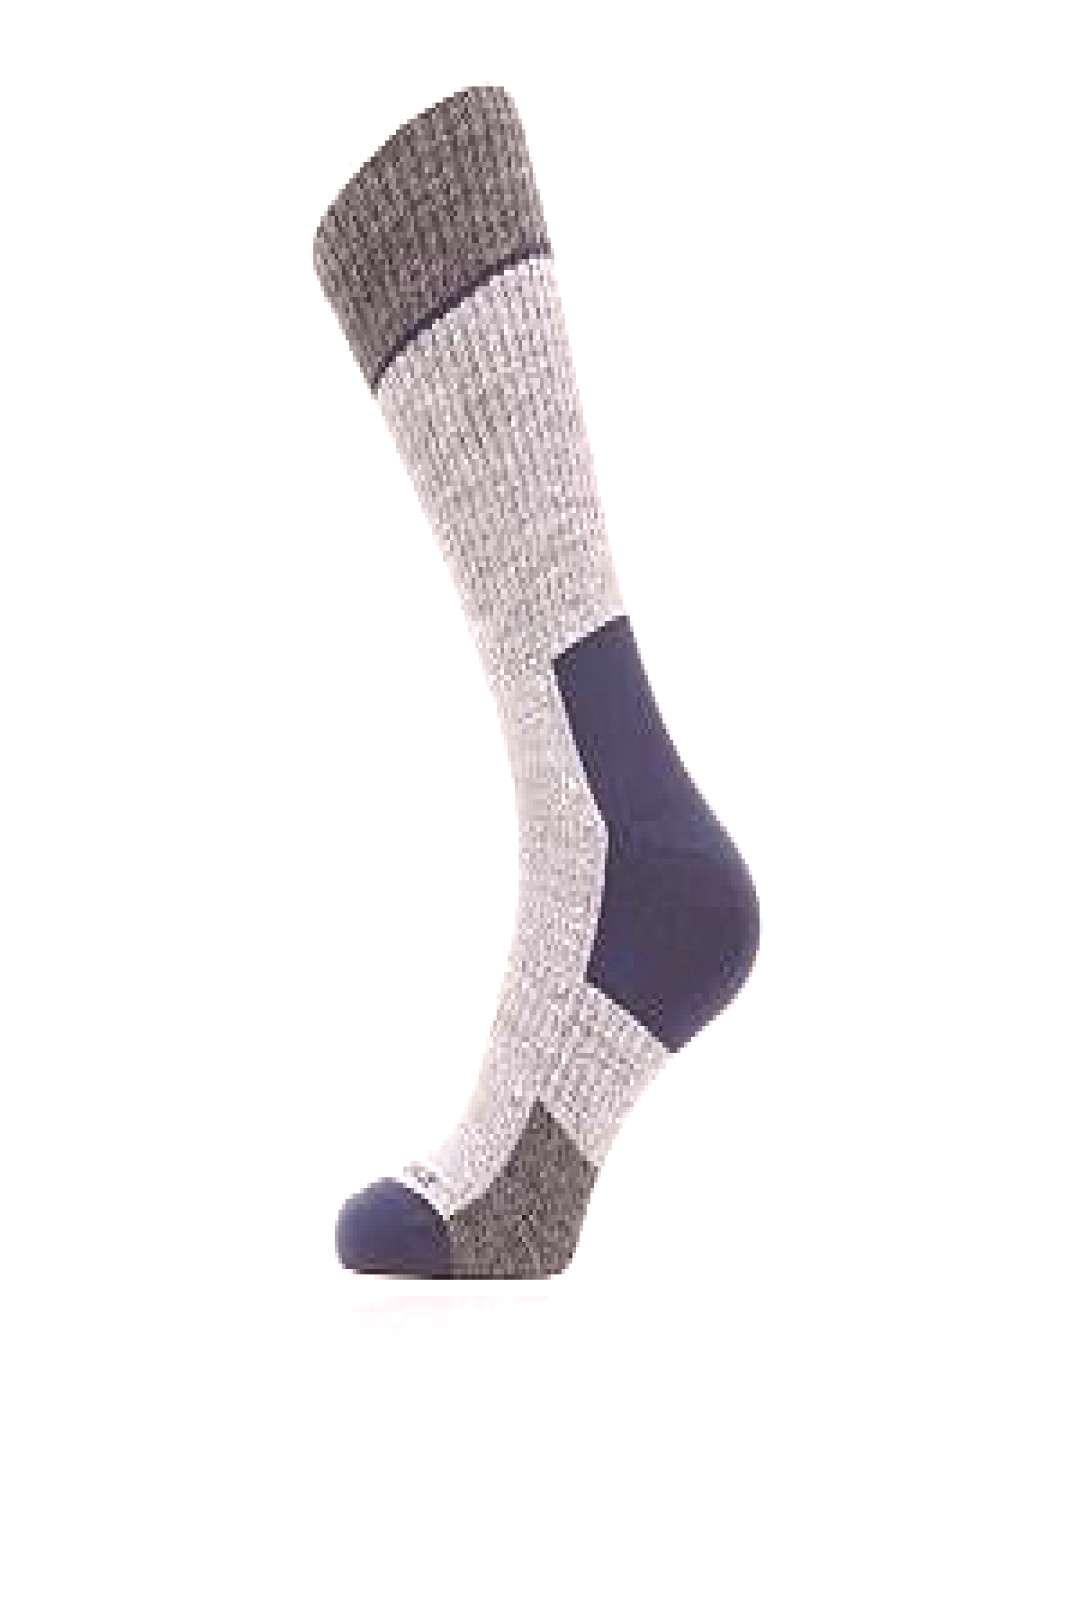 mid height socks Sealskinz Solo Quickdry Mid Length Socks - SealSkinz - Size Extra Large